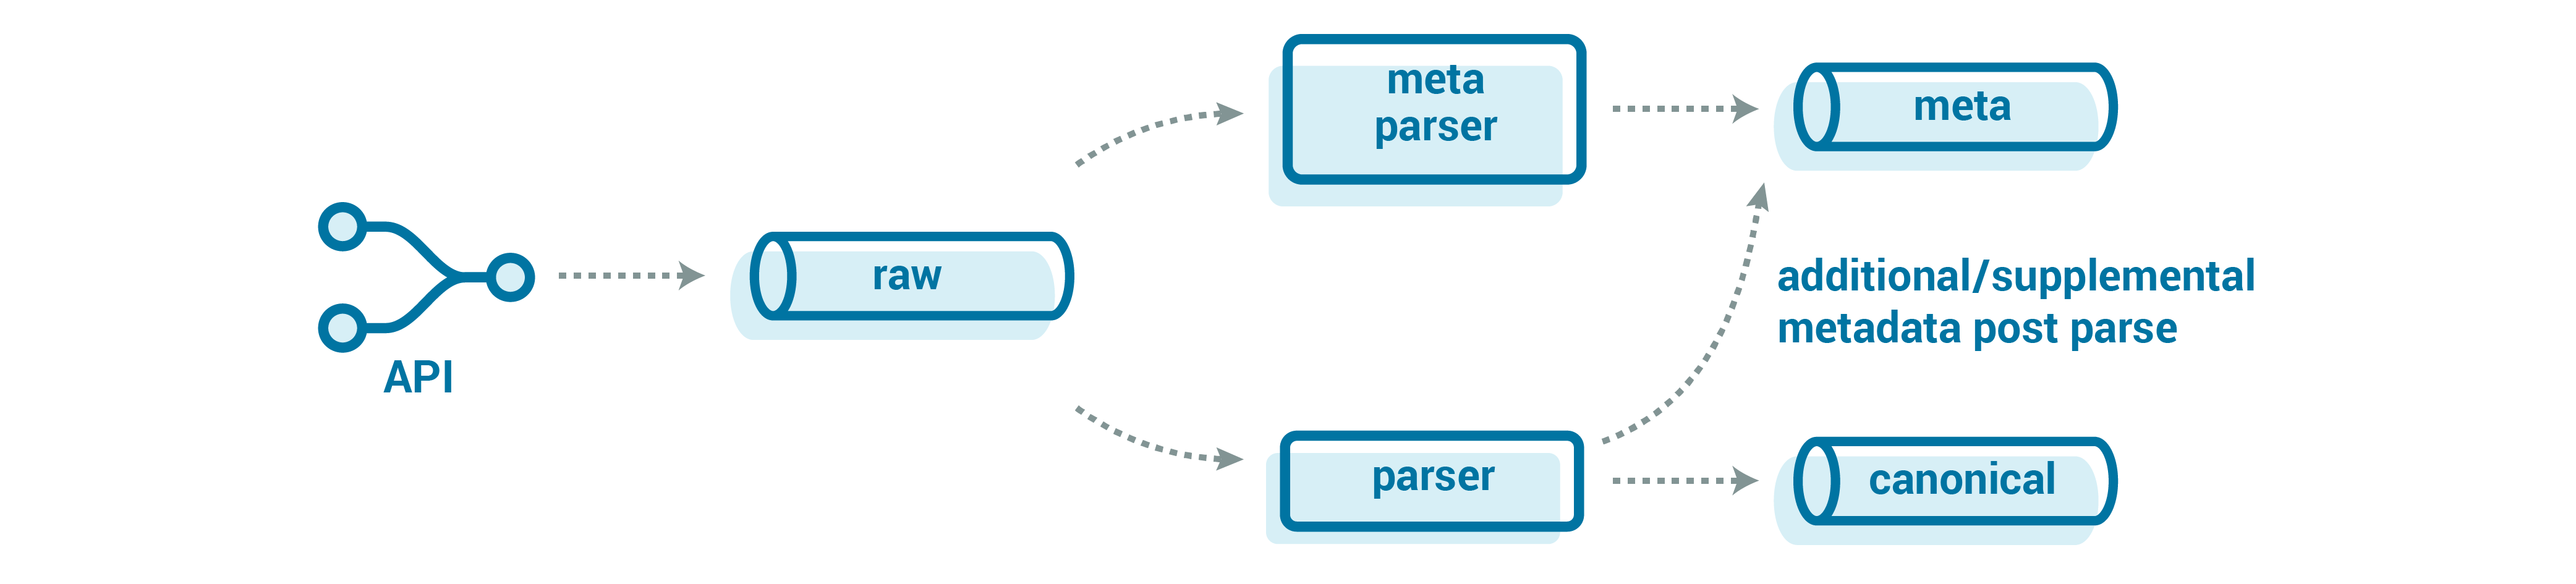 API ➝ Raw ➝ Meta Parser | Parser ➝ Meta | Additional/supplemental metadata post parse | Canonical